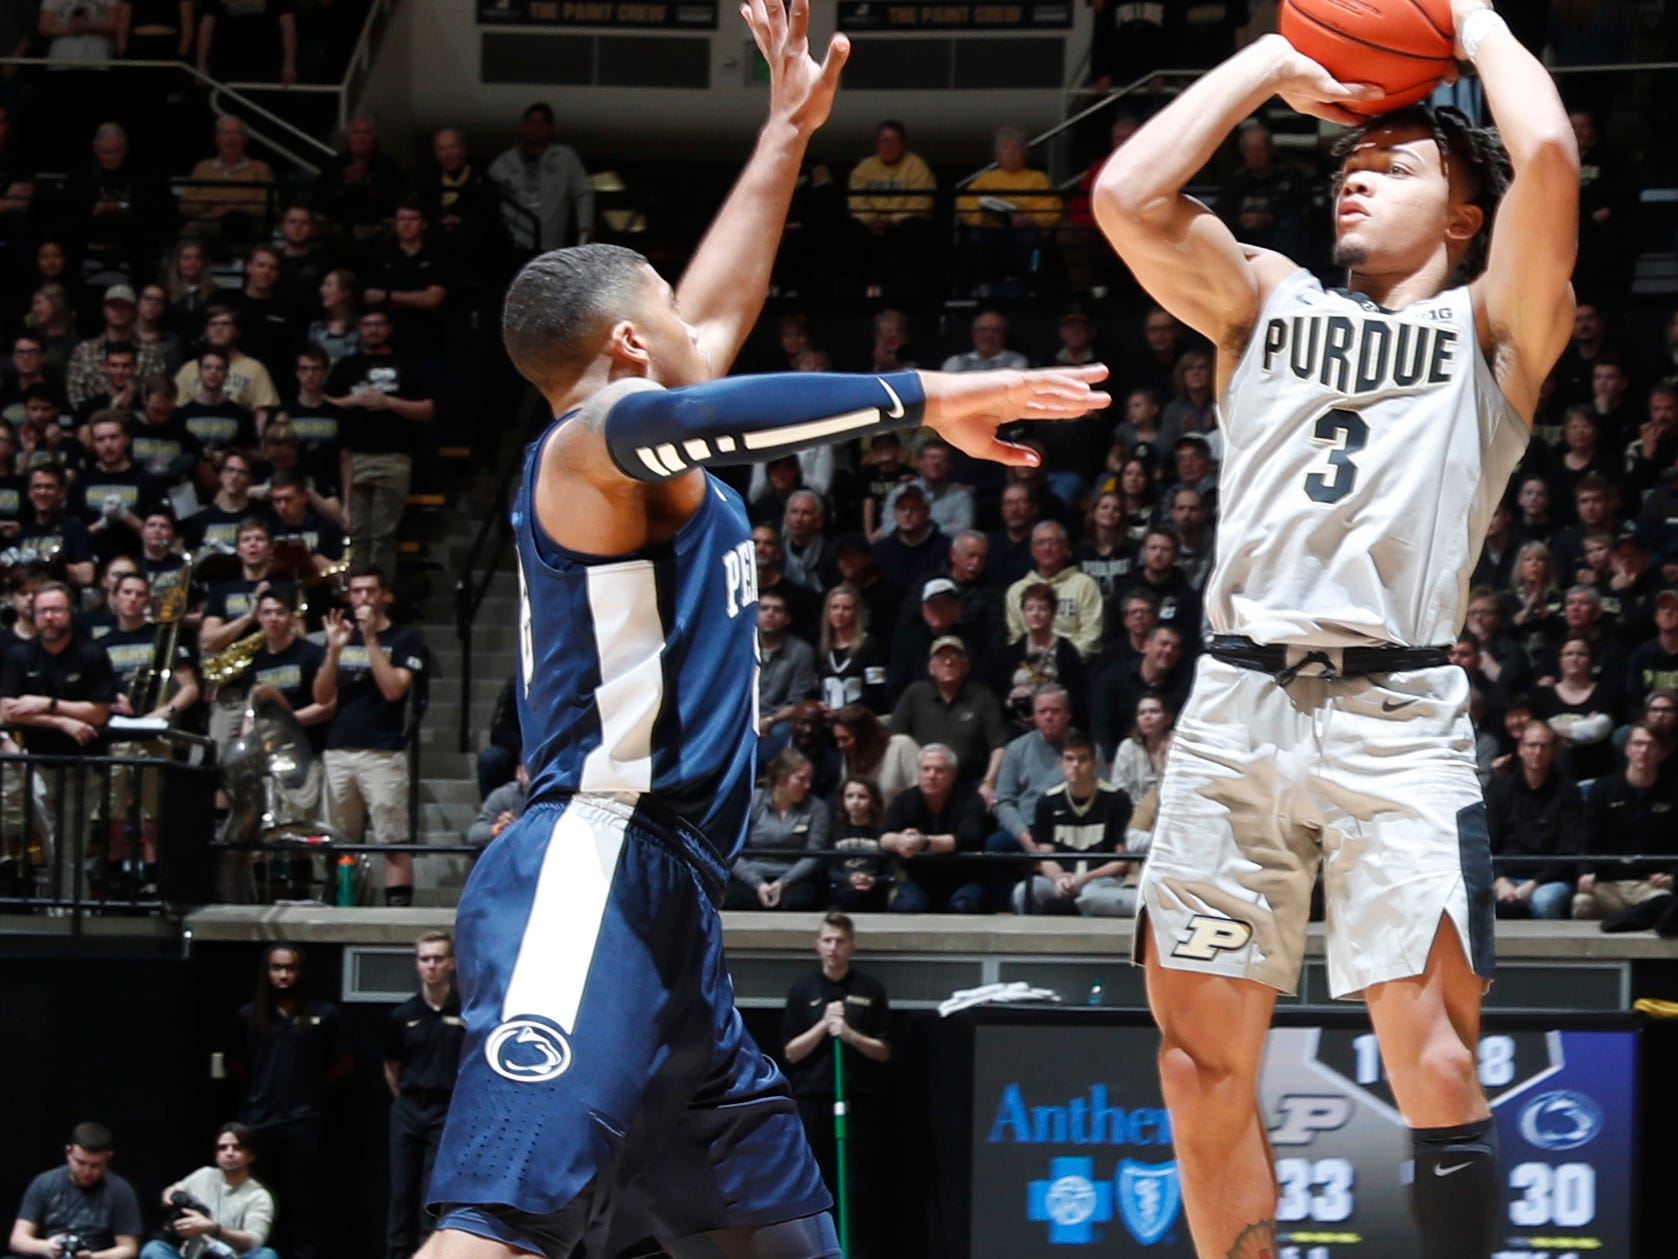 Feb 16, 2019; West Lafayette, IN, USA; Purdue Boilermakers guard Carsen Edwards shoots a three pointer against the Penn State Nittany Lions during the second half at Mackey Arena. Mandatory Credit: Brian Spurlock-USA TODAY Sports